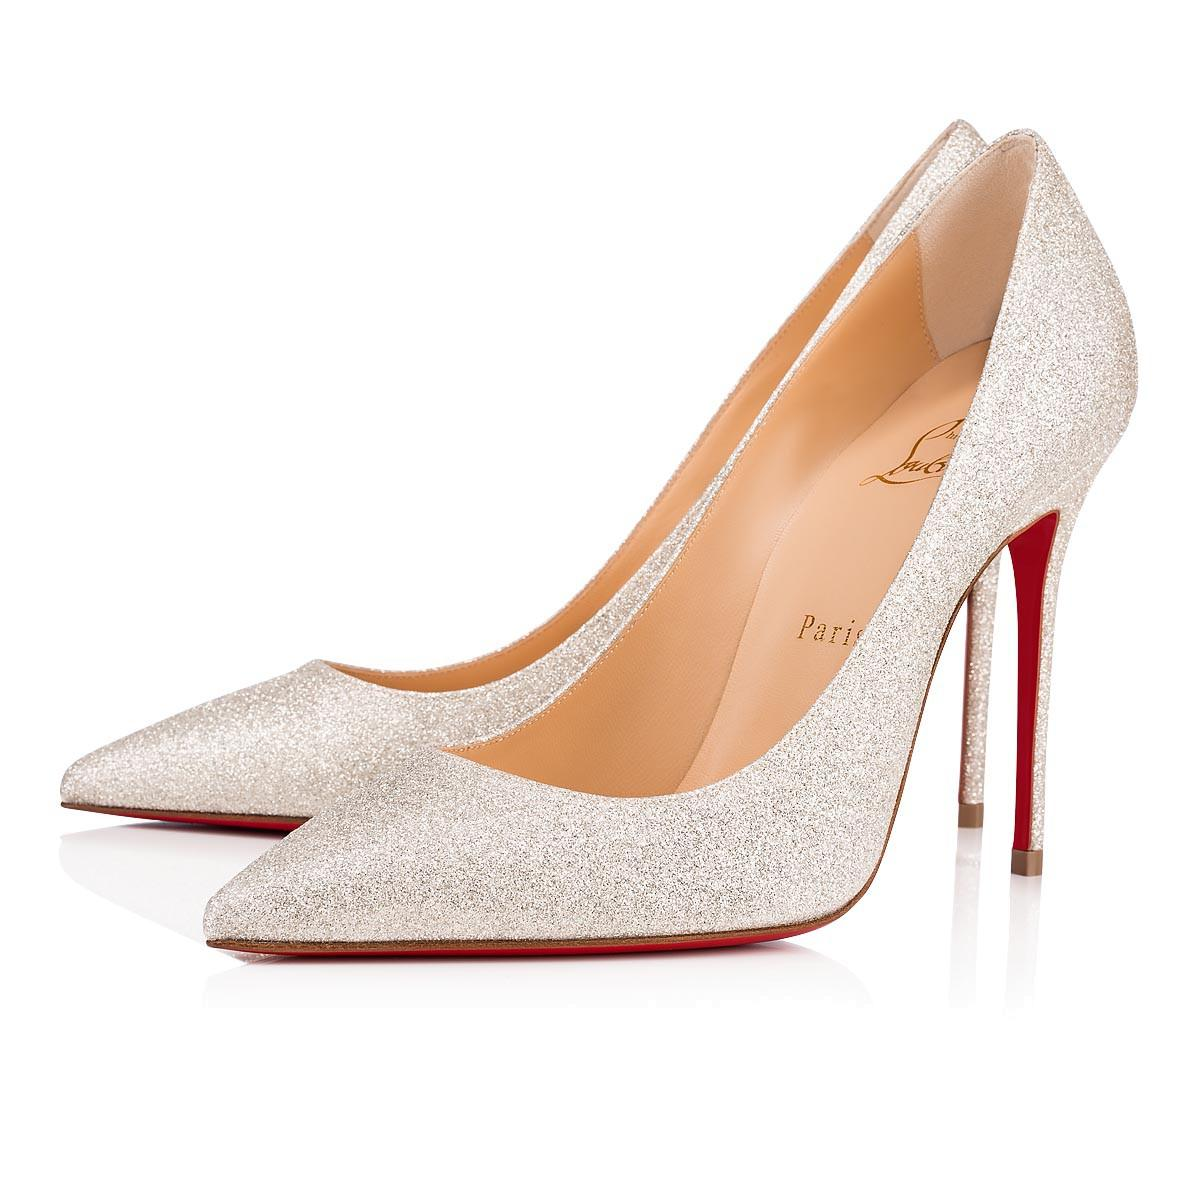 6a22dd21cc2a Christian Louboutin Decollete 554 In Ivory